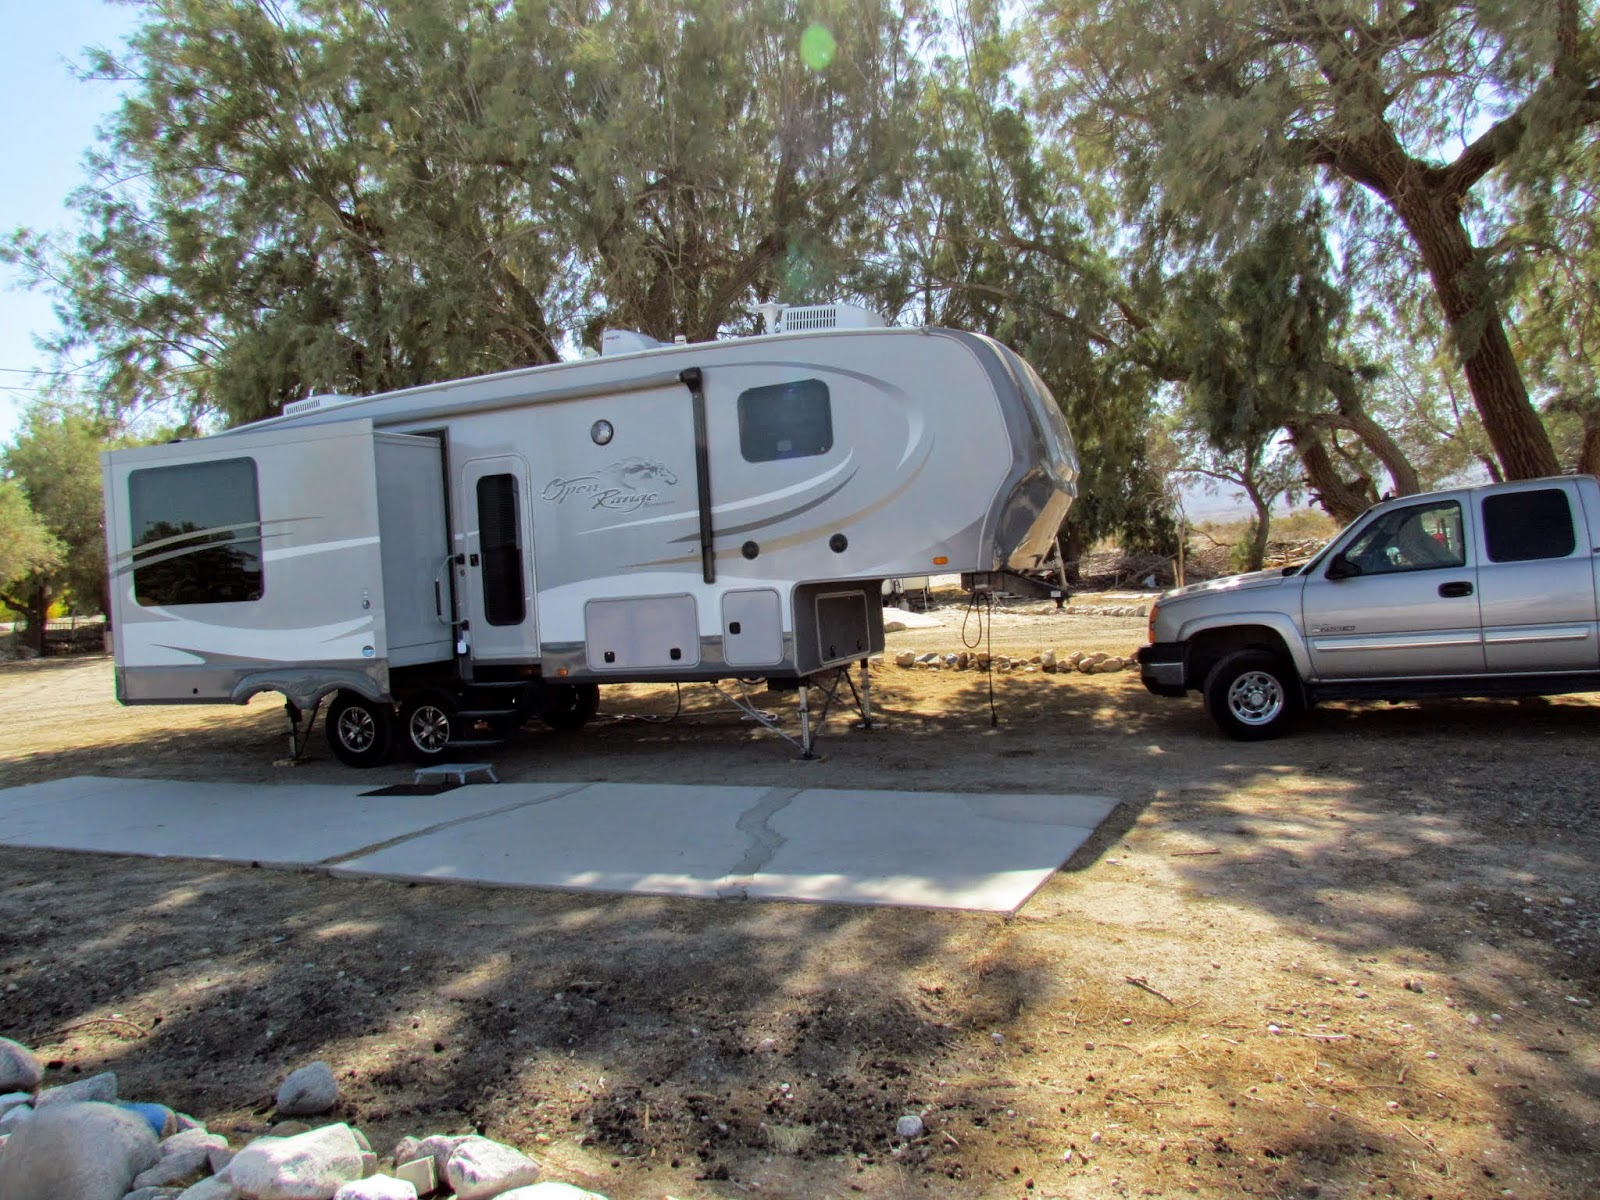 Campground Silver Sands Rv Park Thermal Calif Passport America Rate 10 Just North Of Salton Sea Beach Its A Tired Dusty